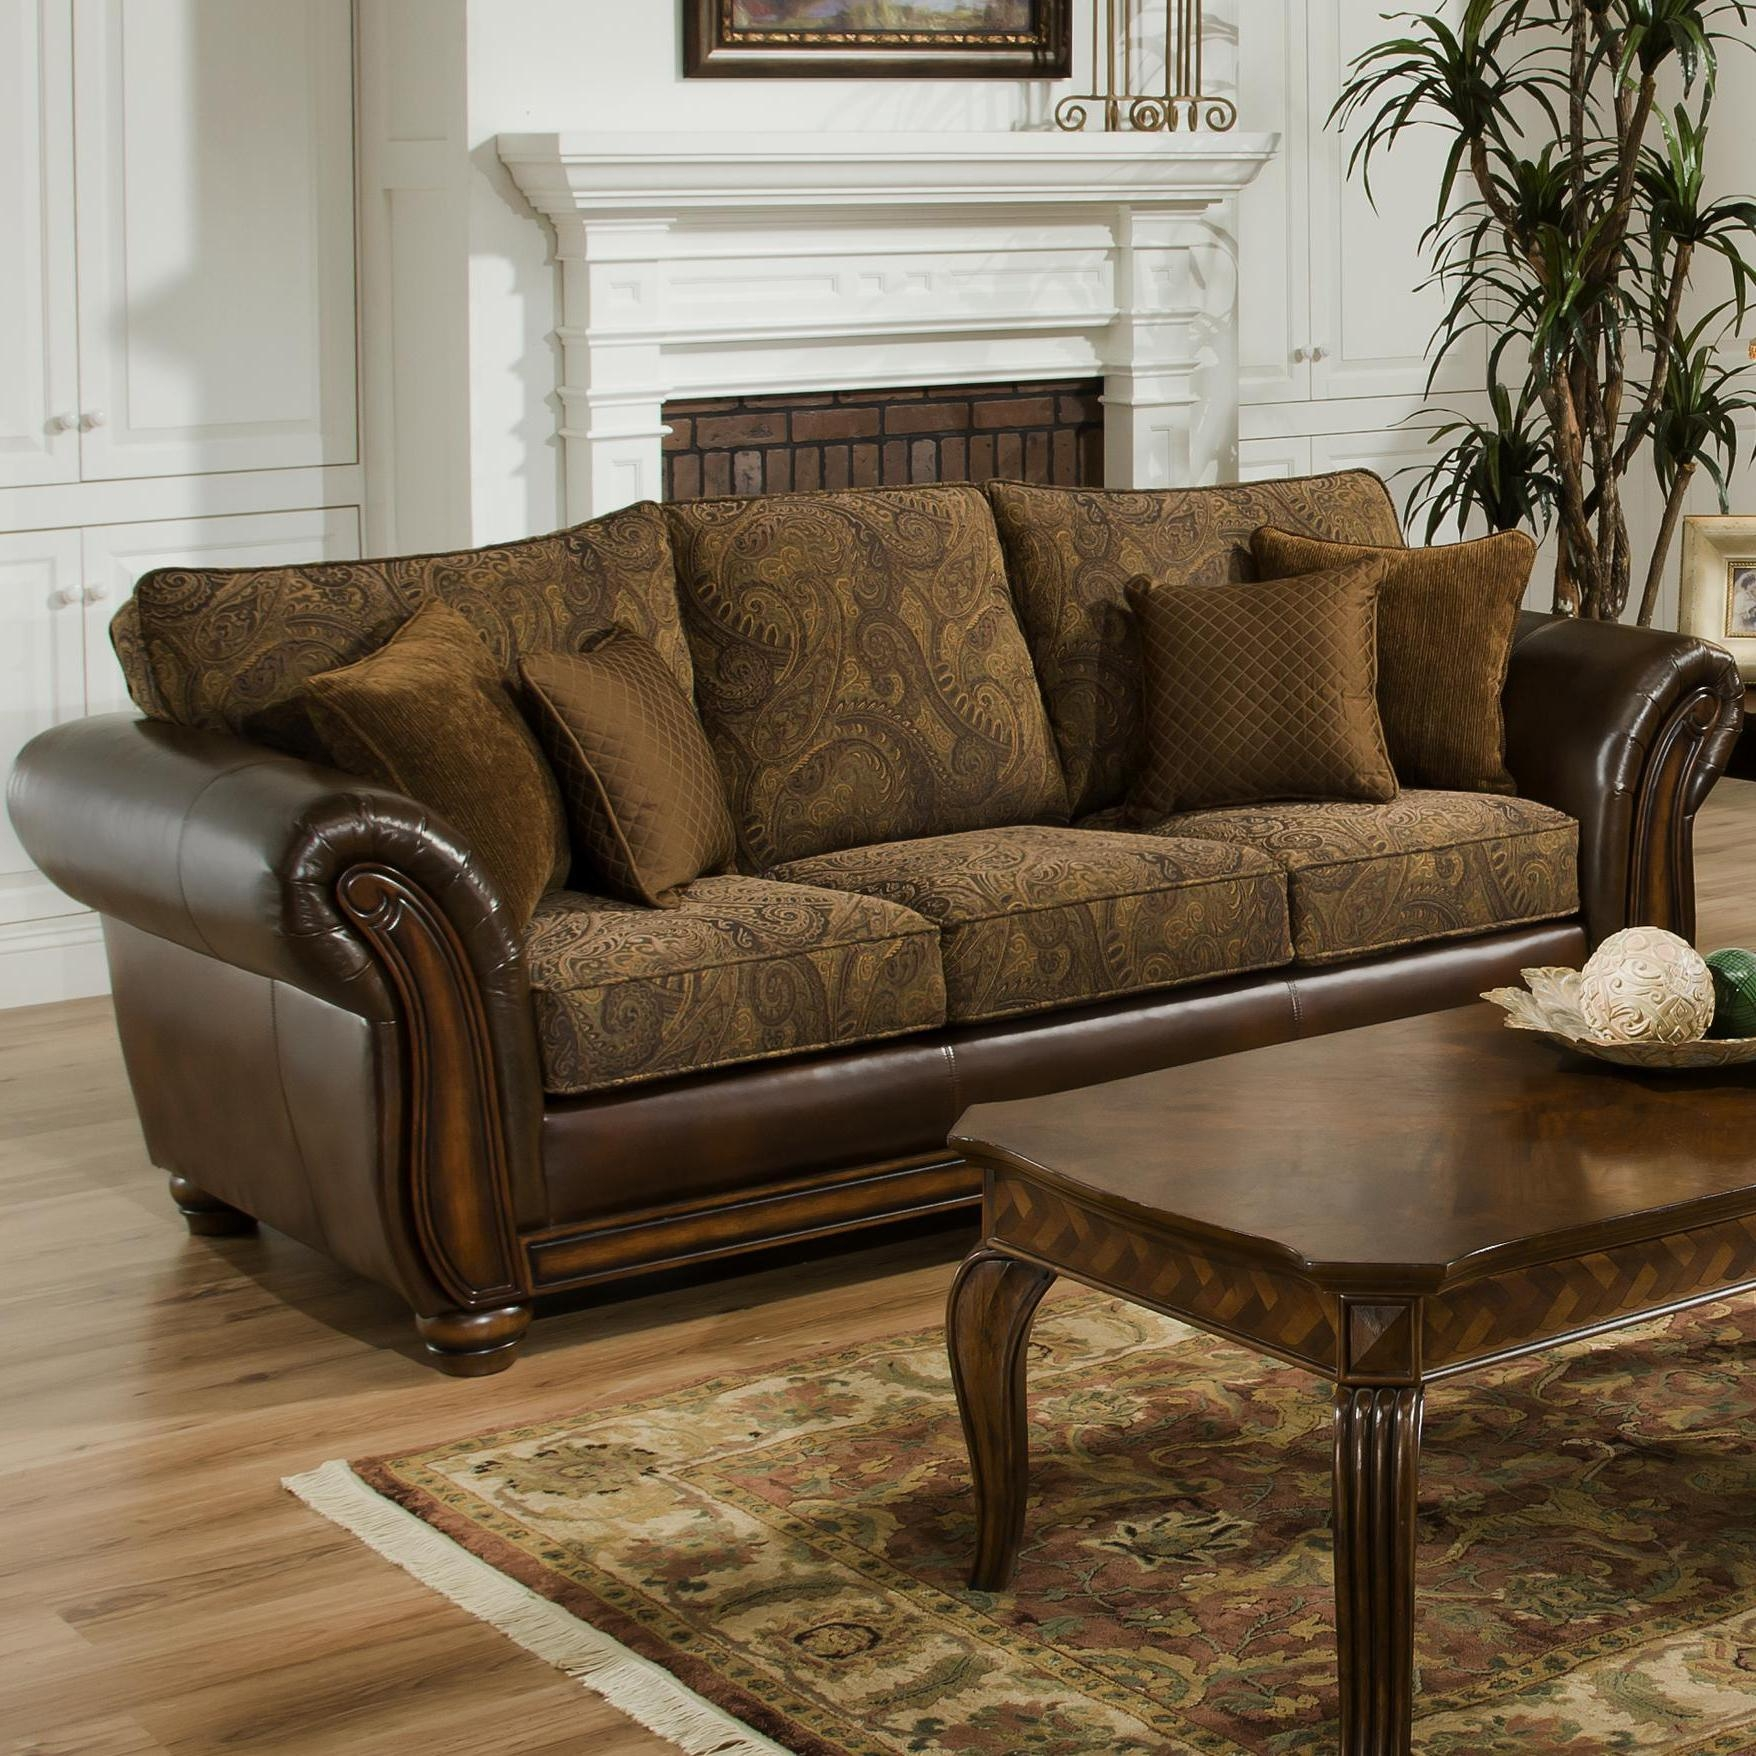 Simmons Upholstery 8104 Queen Leather And Chenille Hide A Bed Sofa Within Simmons Leather Sofas (Image 14 of 20)